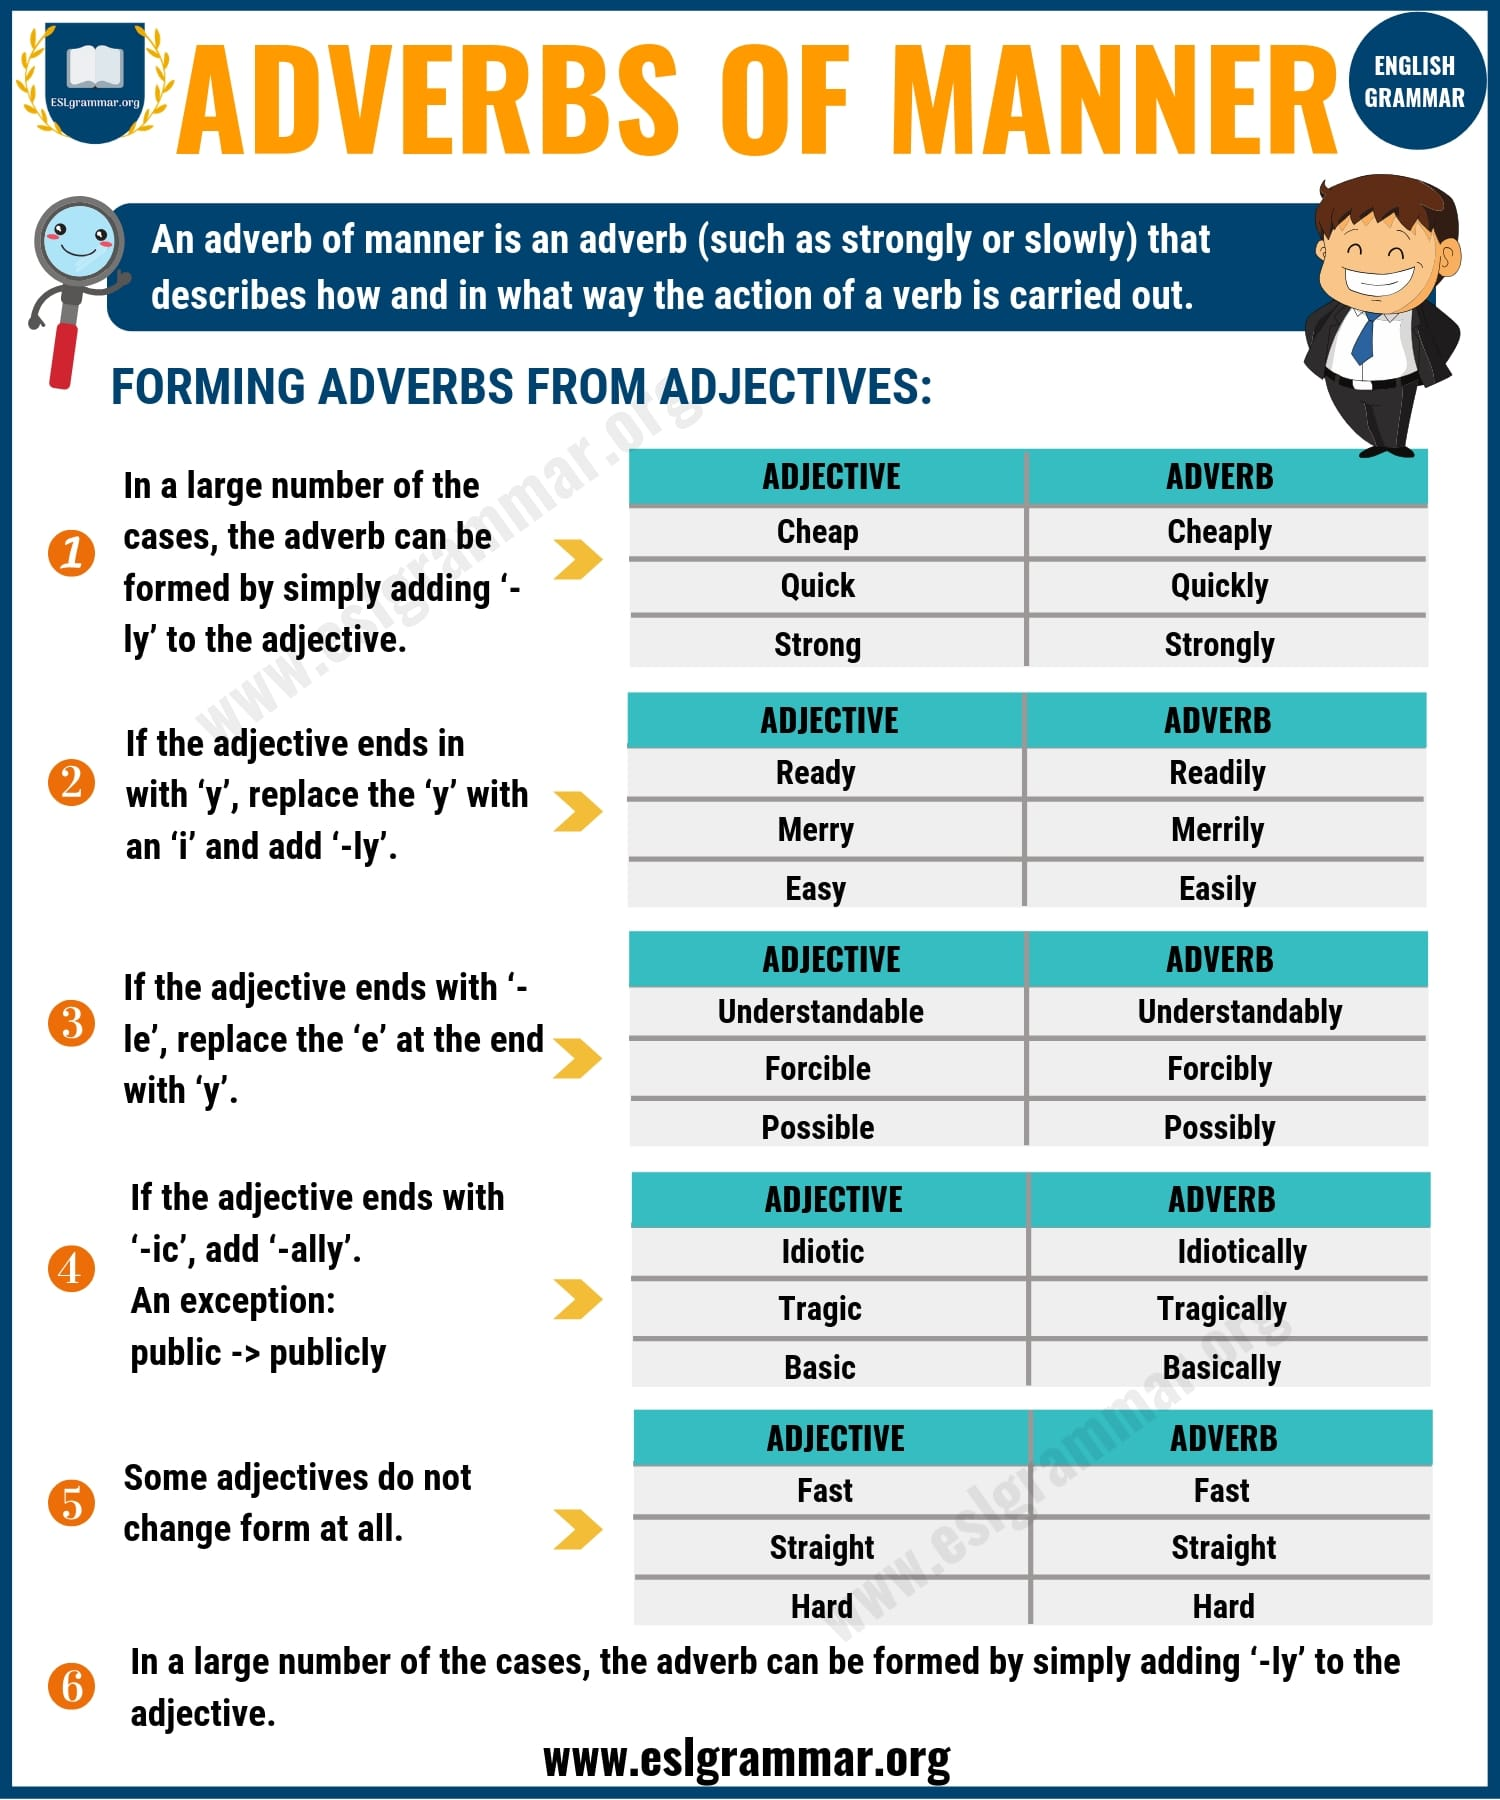 Adverbs: What is an Adverb? 8 Types of Adverbs with Examples 2